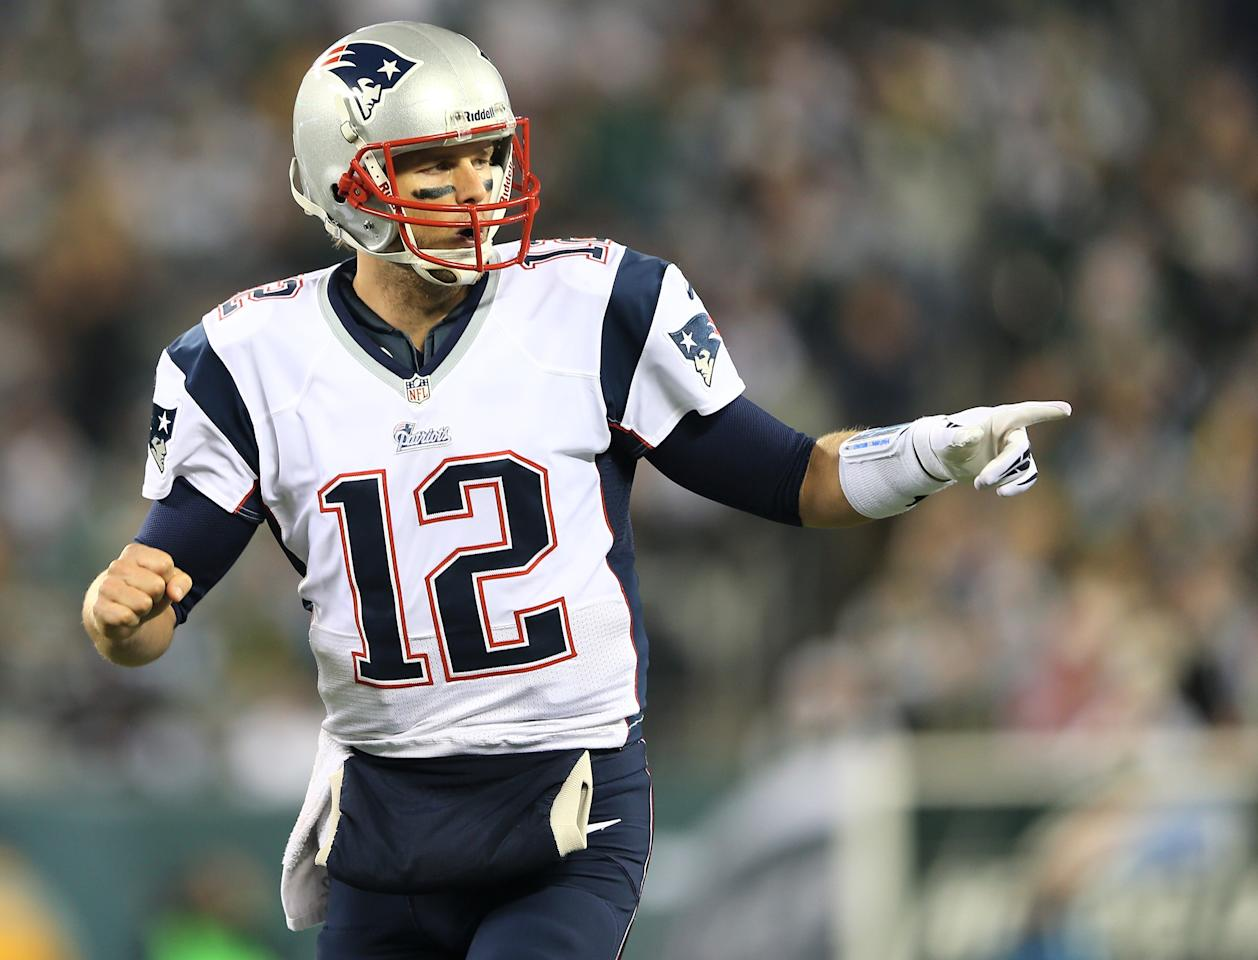 EAST RUTHERFORD, NJ - NOVEMBER 22:   Tom Brady #12 of the New England Patriots celebrates his touchdown pass to Julian Edelman in the second quarter against the New York Jets on November 22, 2012 at MetLife Stadium in East Rutherford, New Jersey.  (Photo by Elsa/Getty Images)